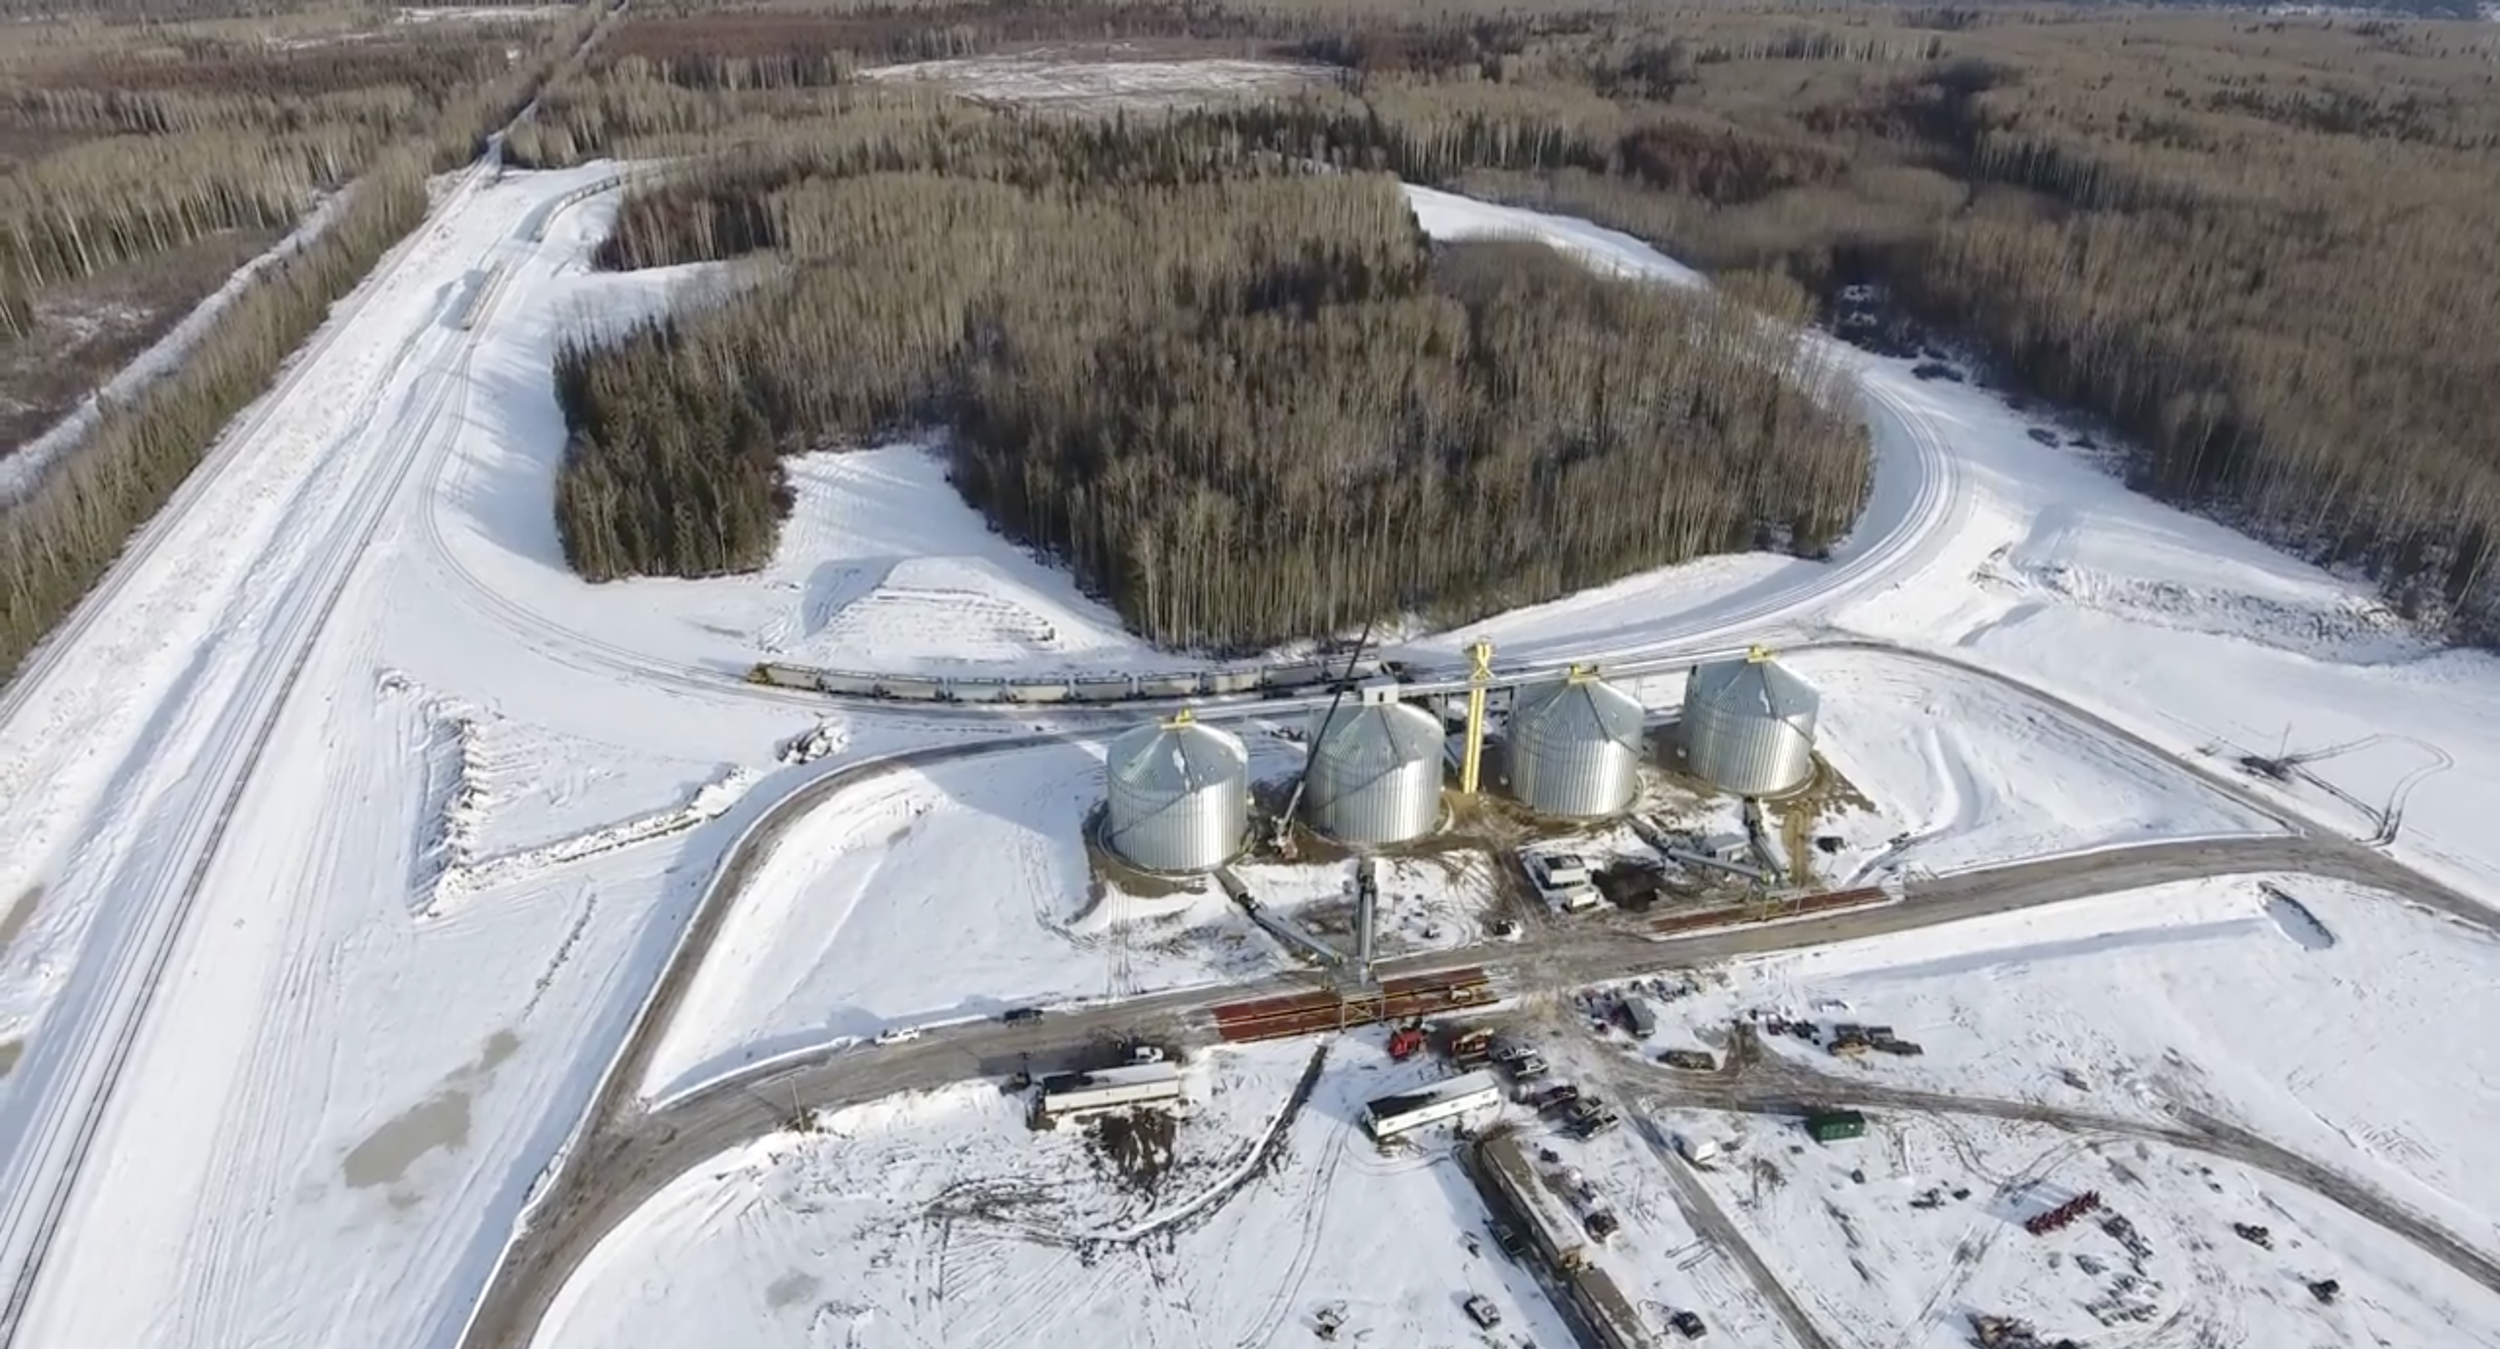 Gold Creek Facility - Gold Creek, just south of Grande Prairie, is also home to a Wayfinder facility. It has 50,000 metric tonnes of storage and track space for over 200 railcars. This site is jointly operated with Bailly's Transport and provides unparalleled access to the South Montney.